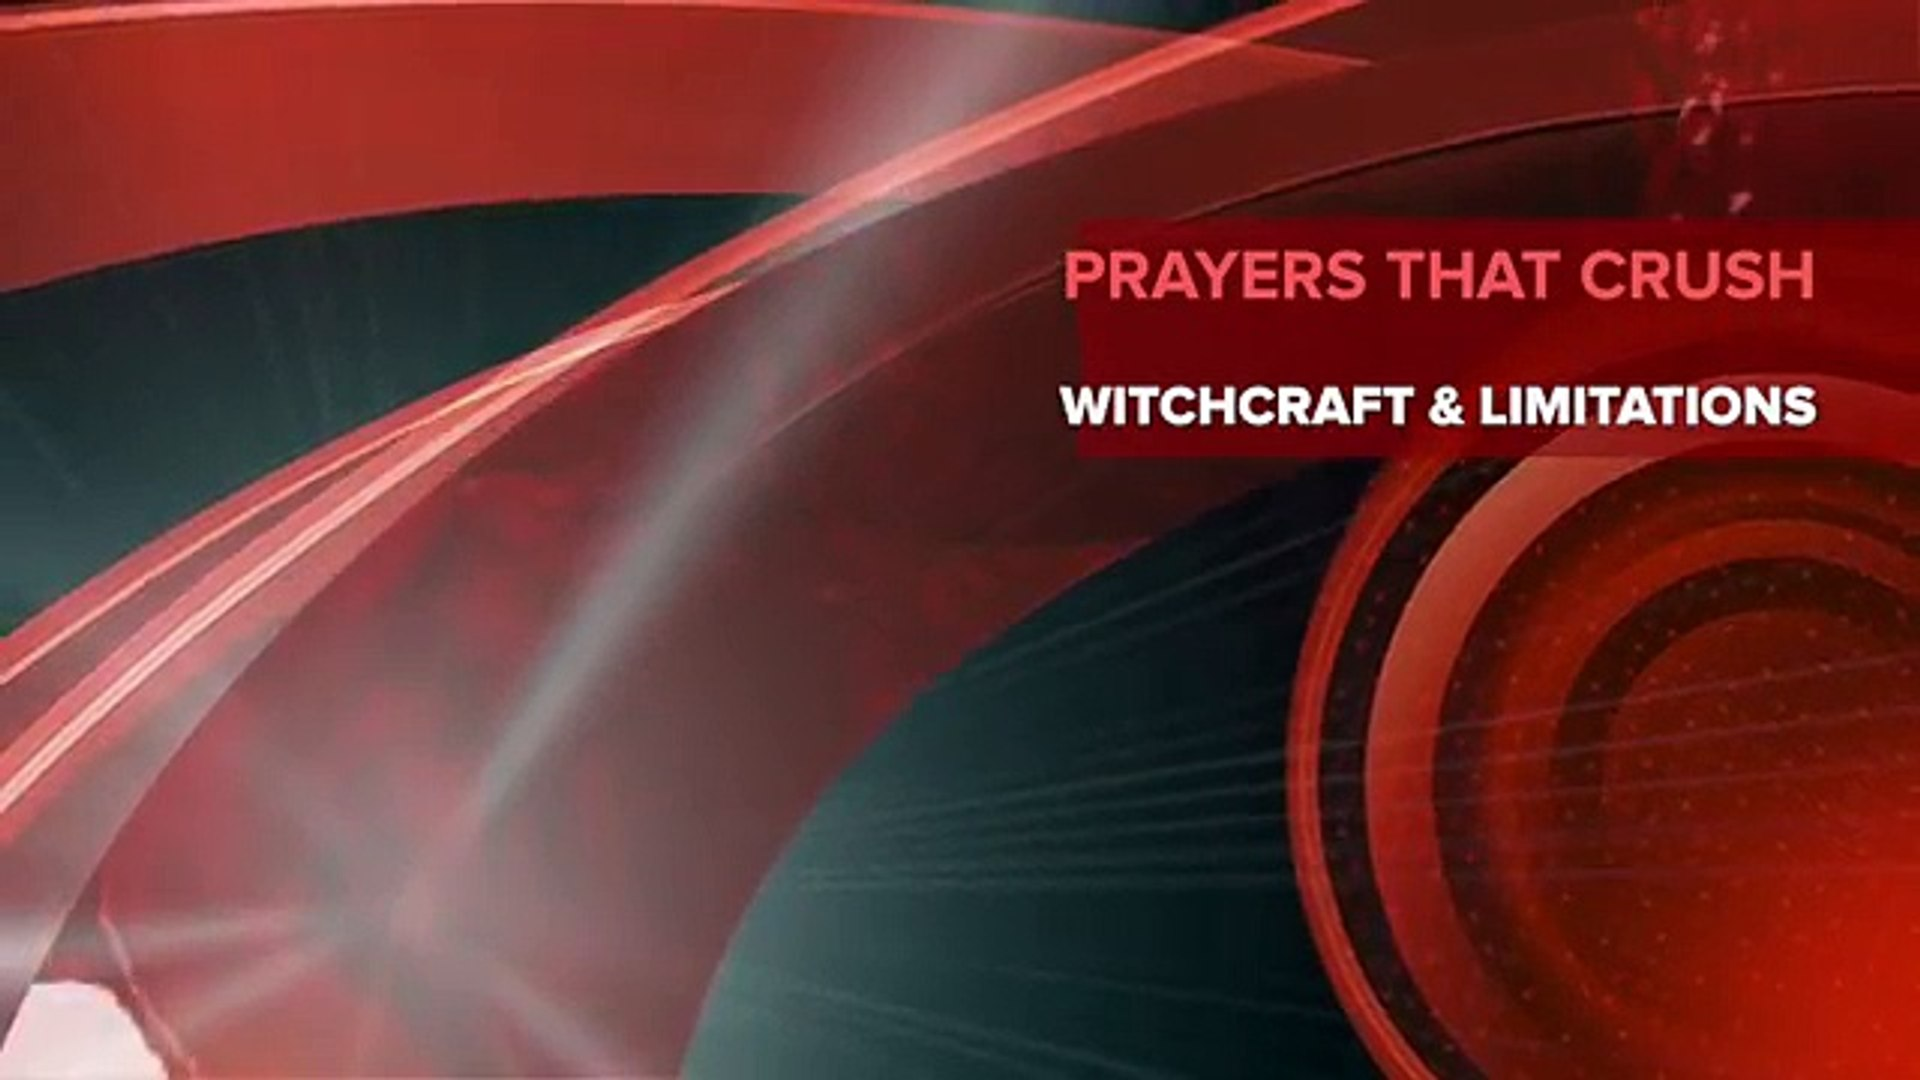 Prayer Missiles To CRUSH Witchcraft & Limitations || Part 3 - See  Description for Part 1 & 2